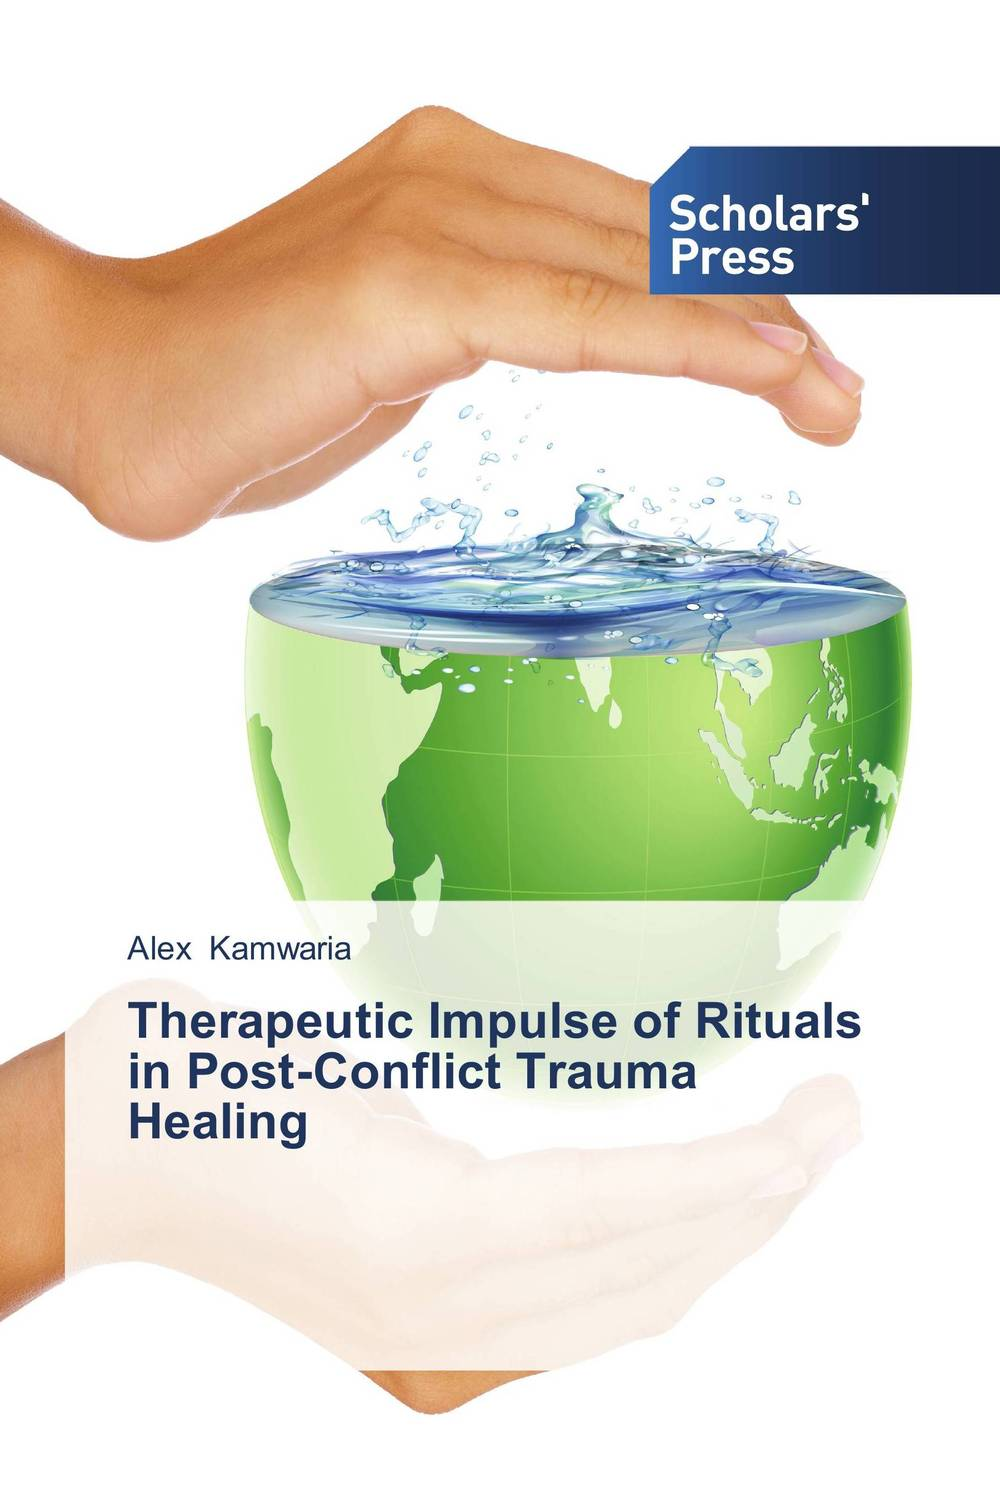 Therapeutic Impulse of Rituals in Post-Conflict Trauma Healing case history of therapeutic patient manual